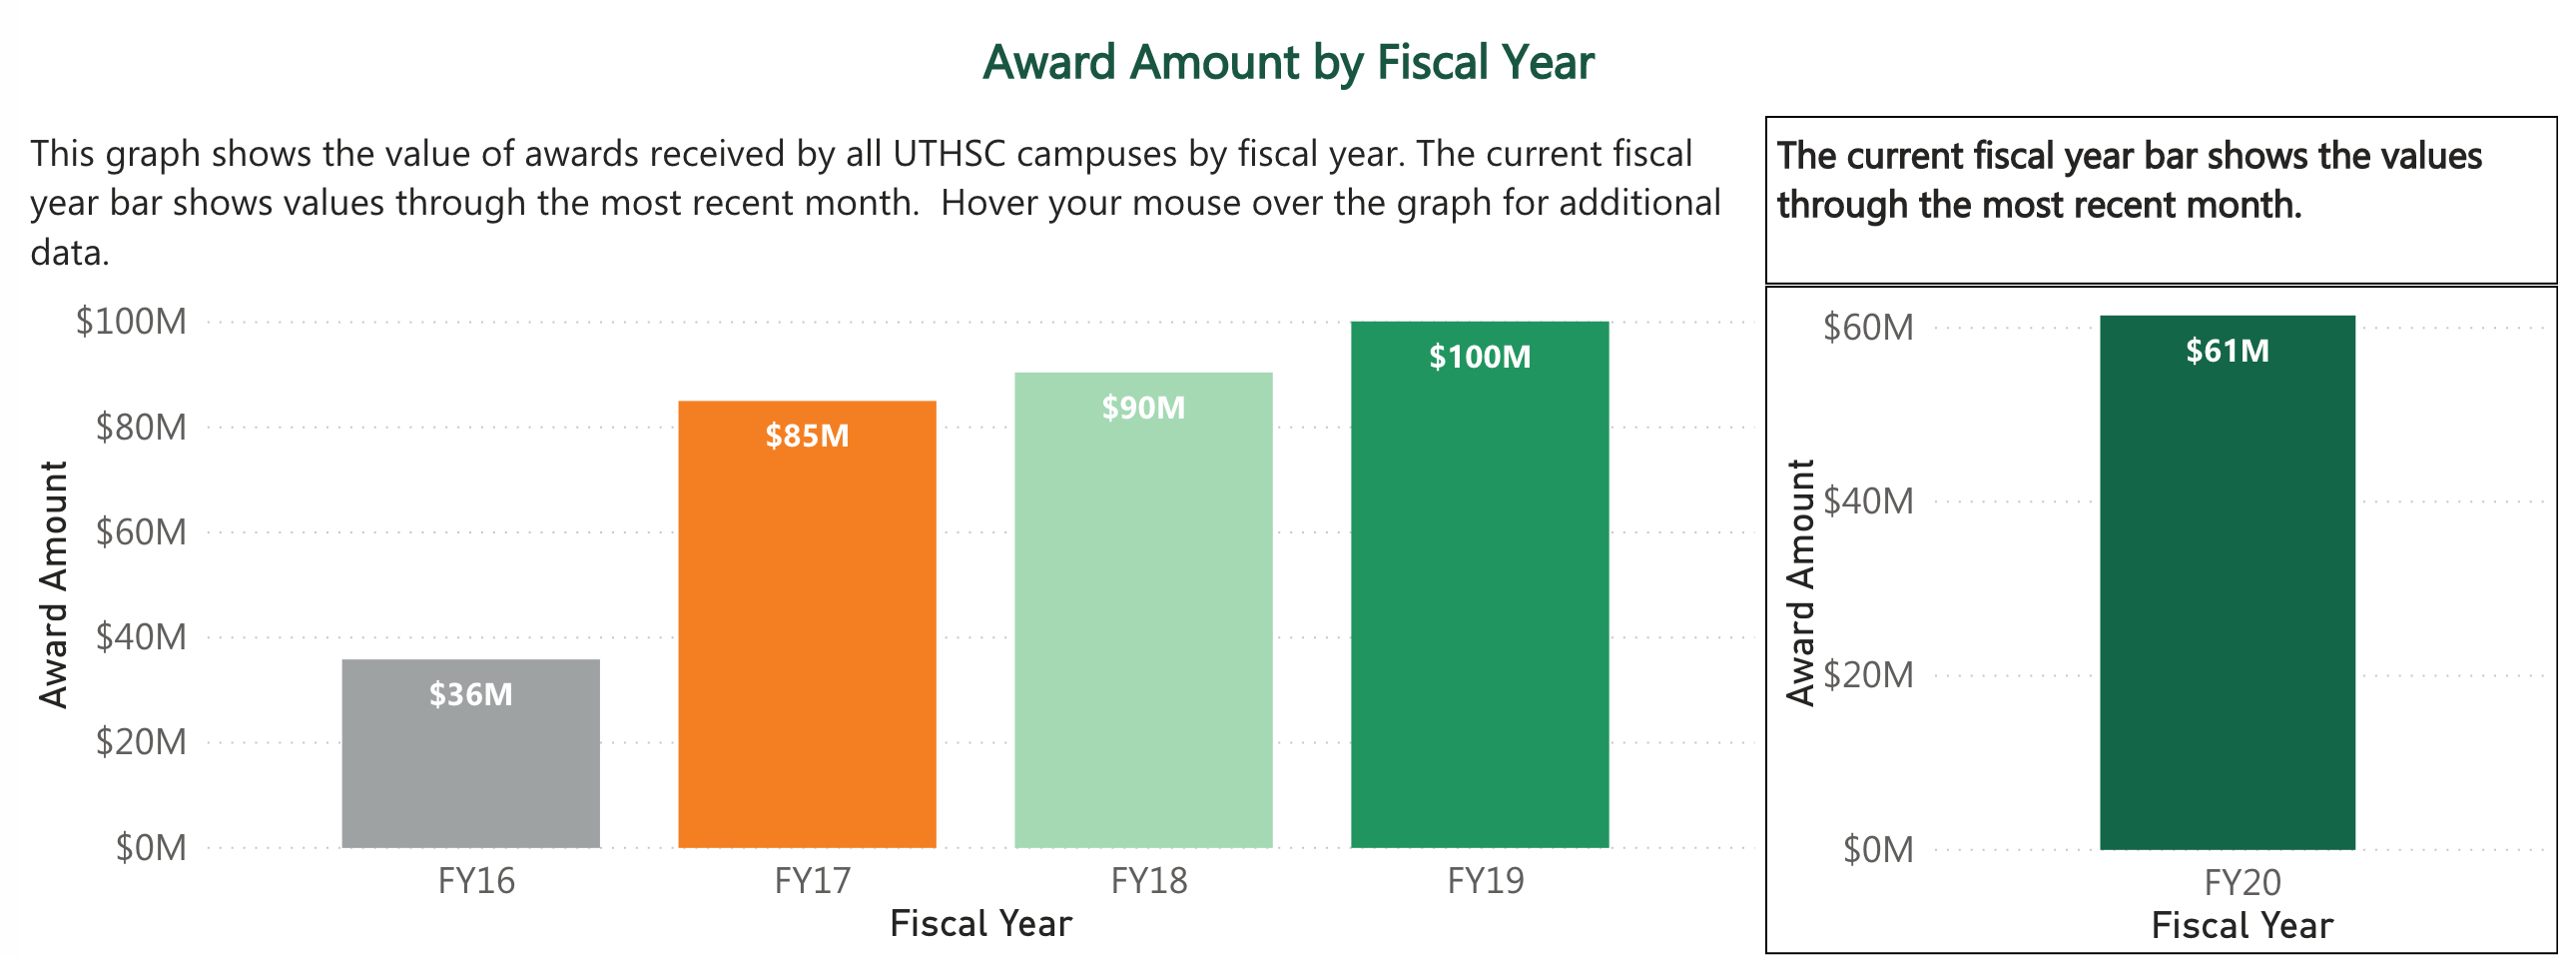 Award Amount by Fiscal Year